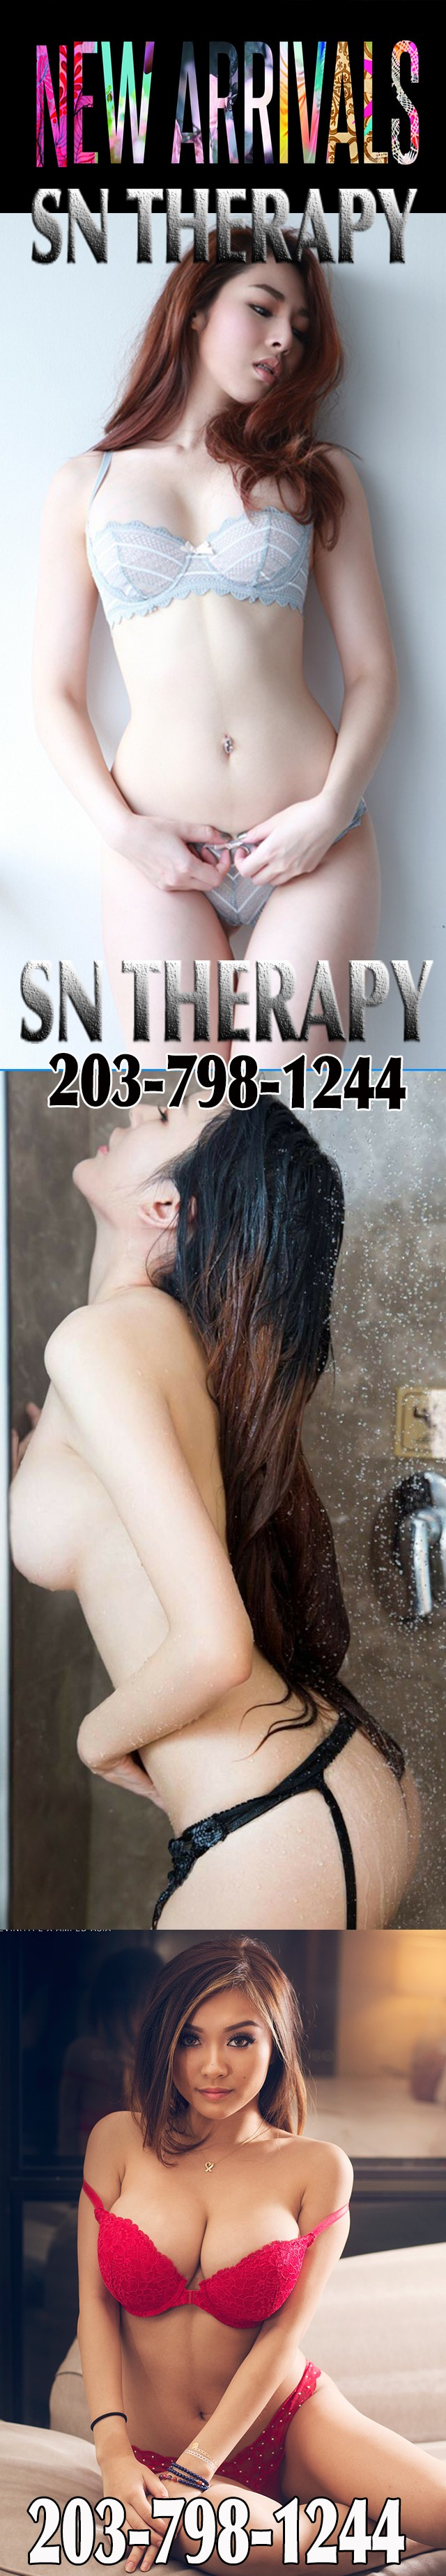 Connecticut escorts backpage